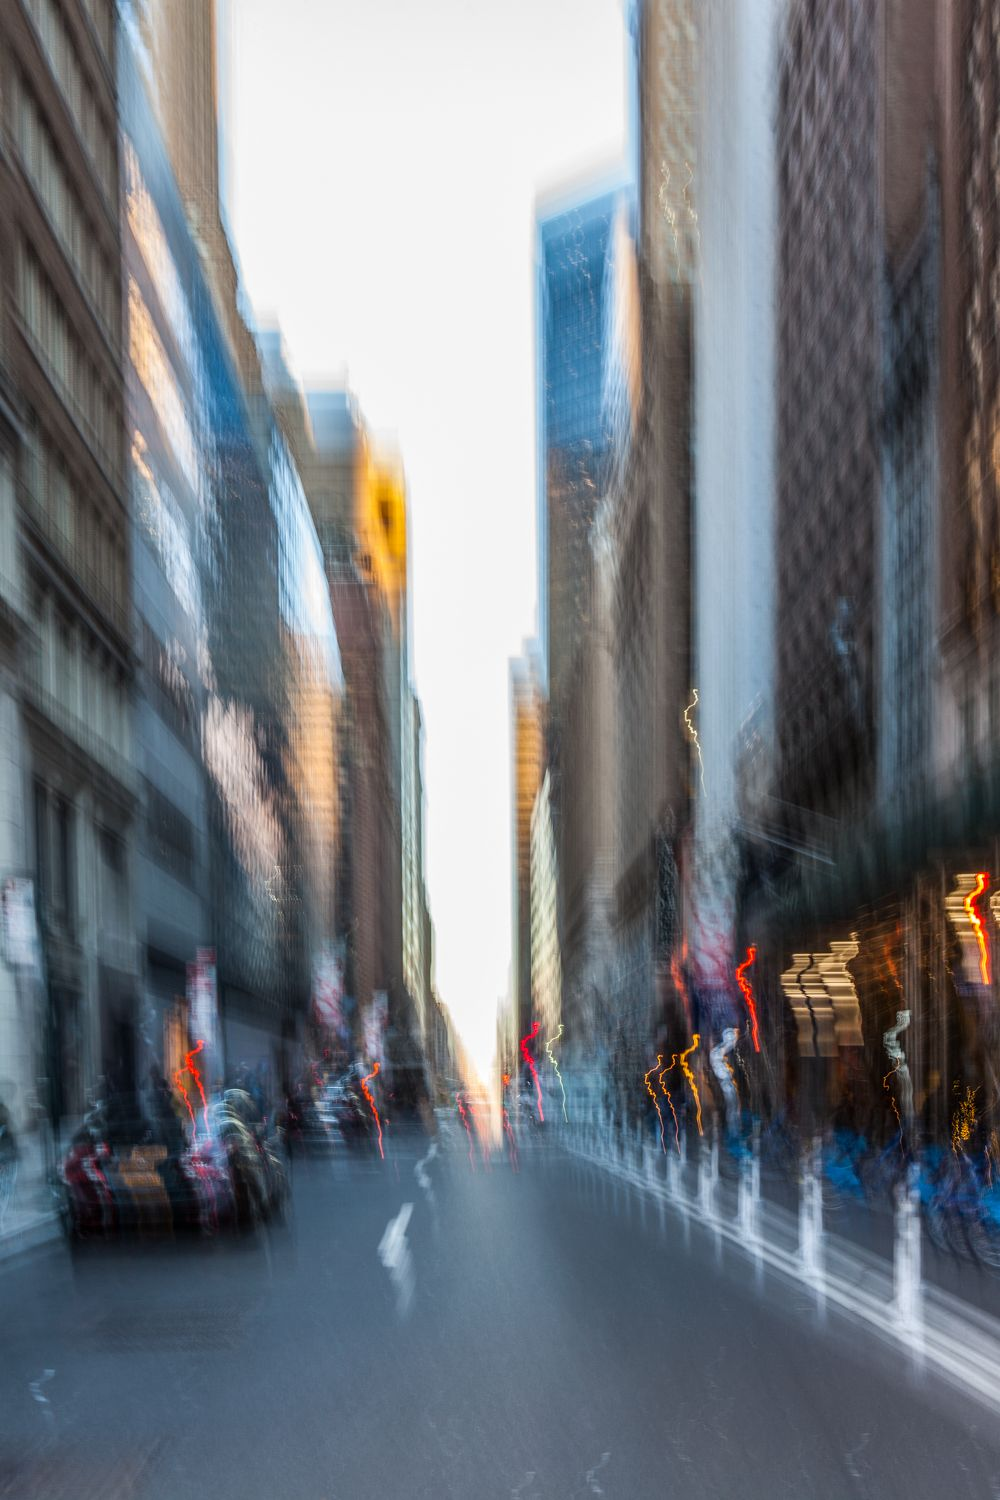 New York Dream 11,Xavier Dumoulin,Photographie contemporaine